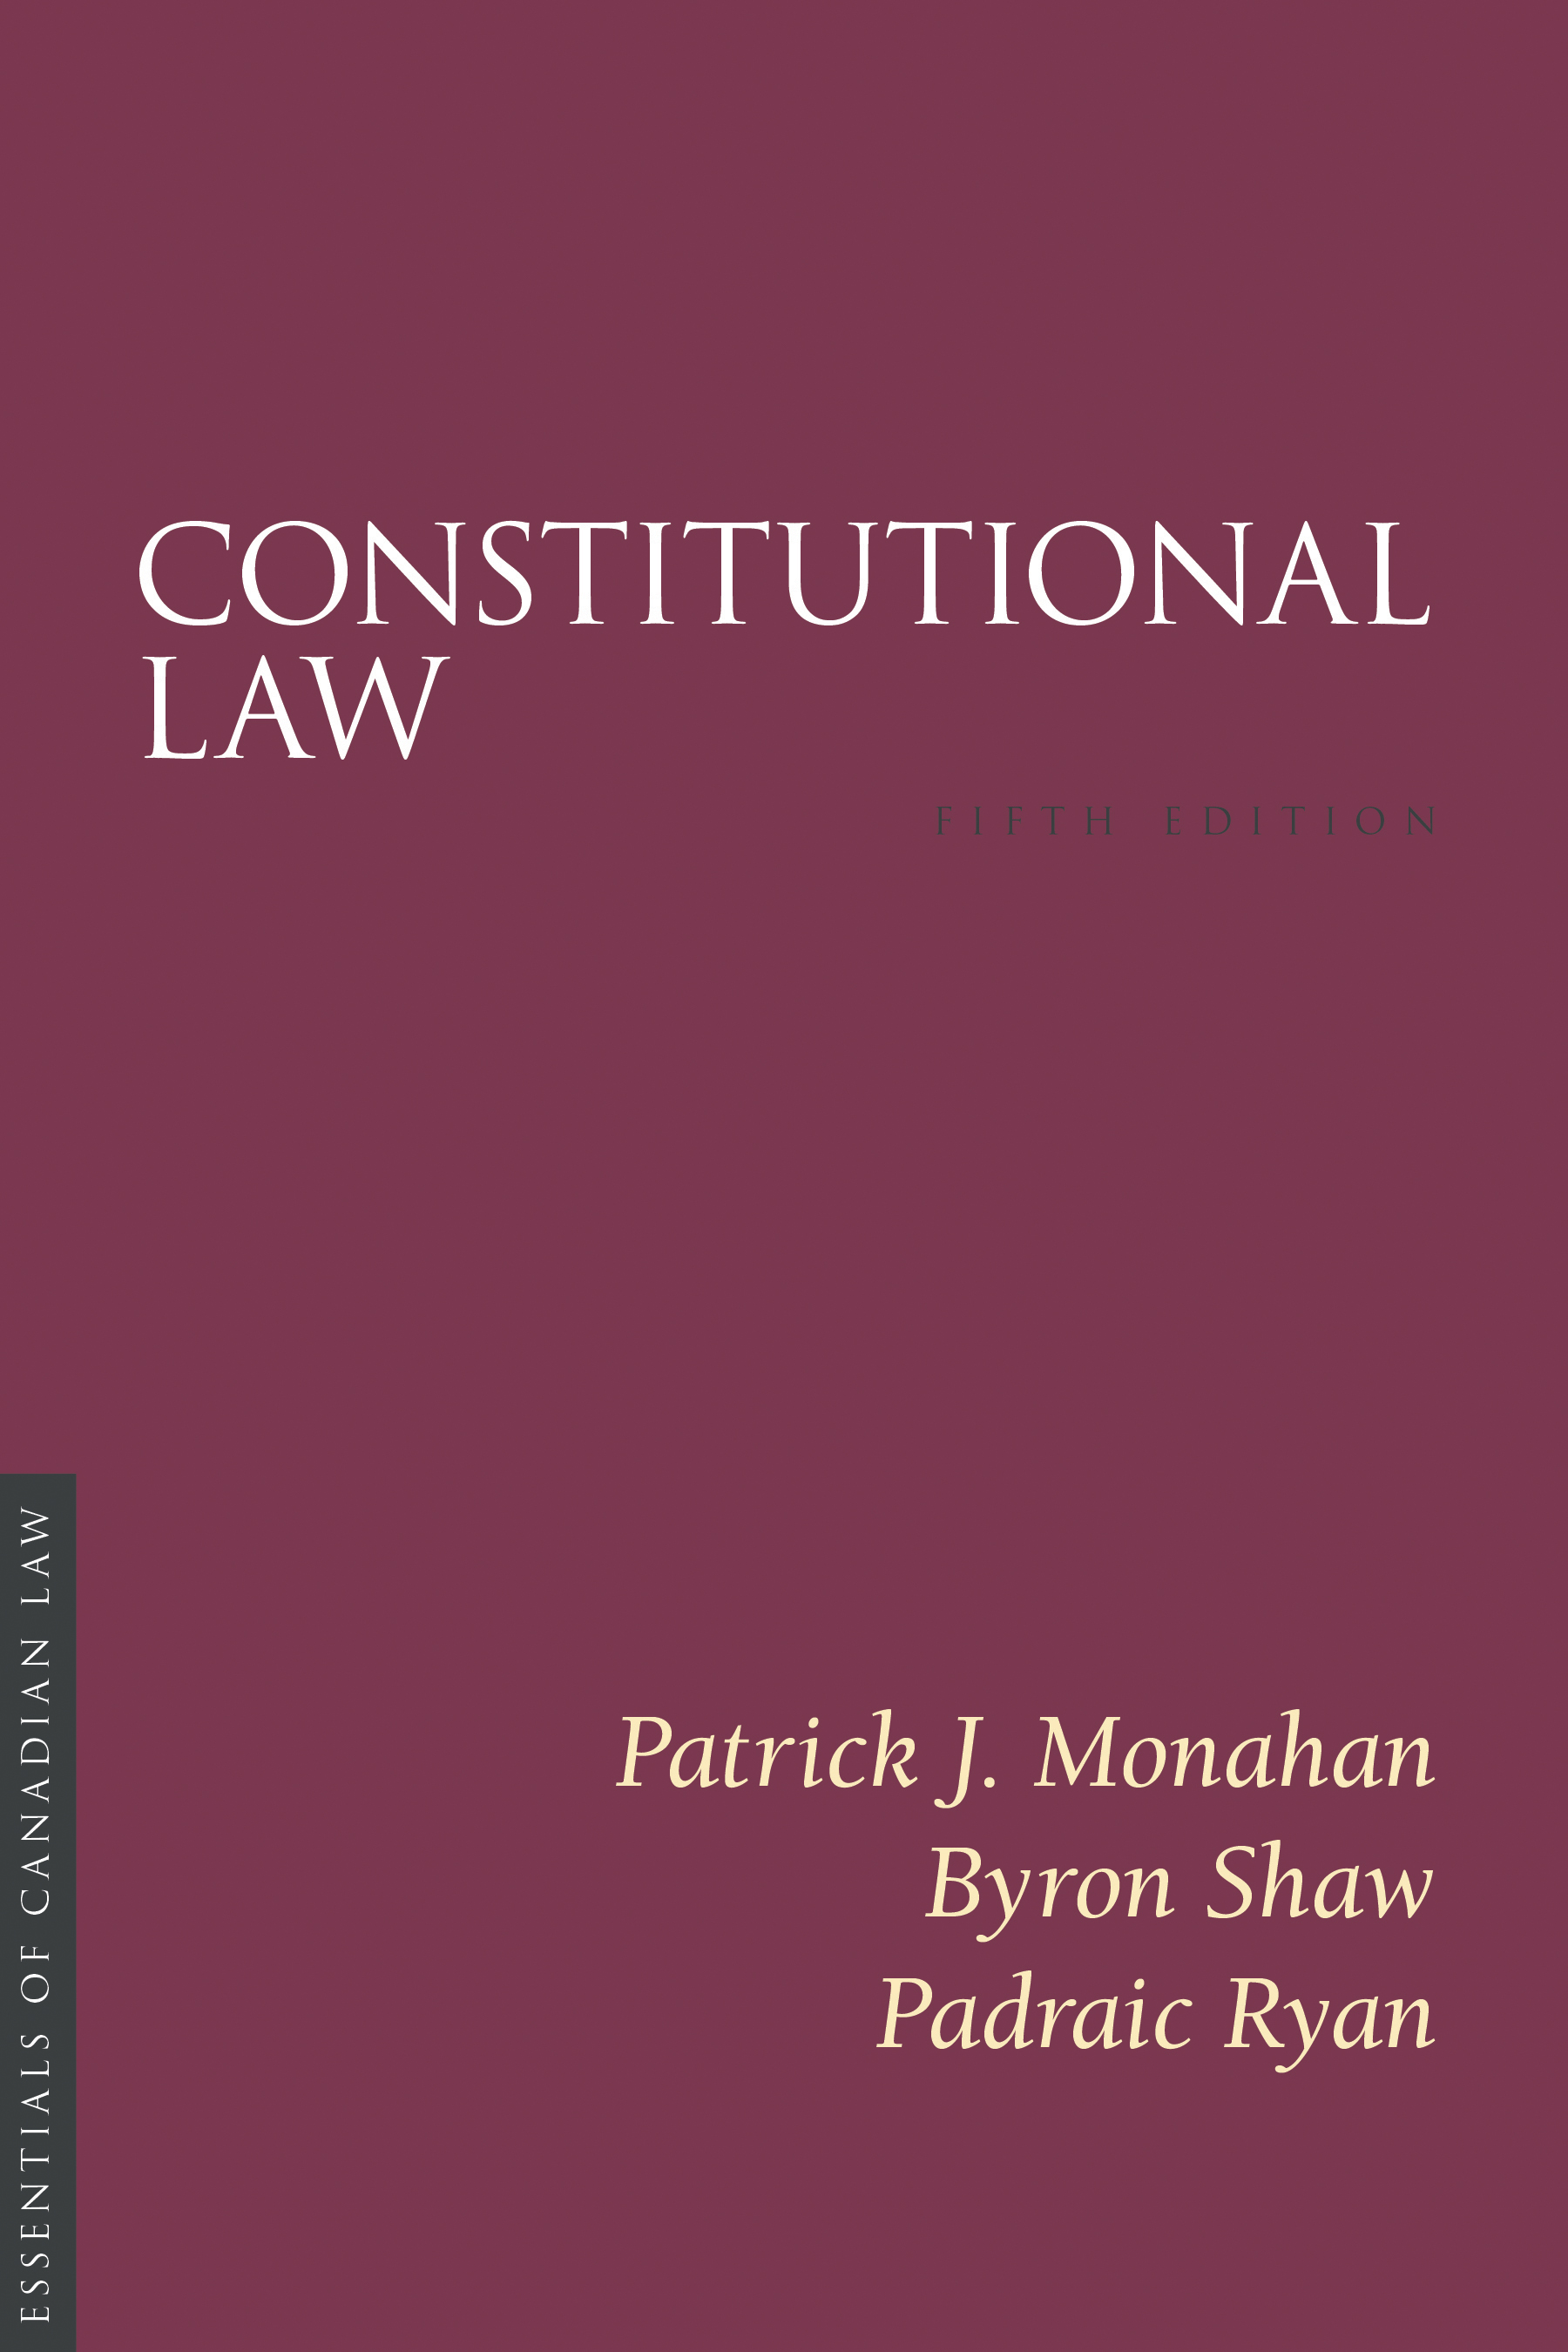 Book cover for Constitutional Law by Patrick J Monahan, Byron Shaw and Padraic Ryan. As a book in the Essentials of Canadian Law series, the cover is a solid burgundy colour with a simple type treatment in capital serif letters in white.